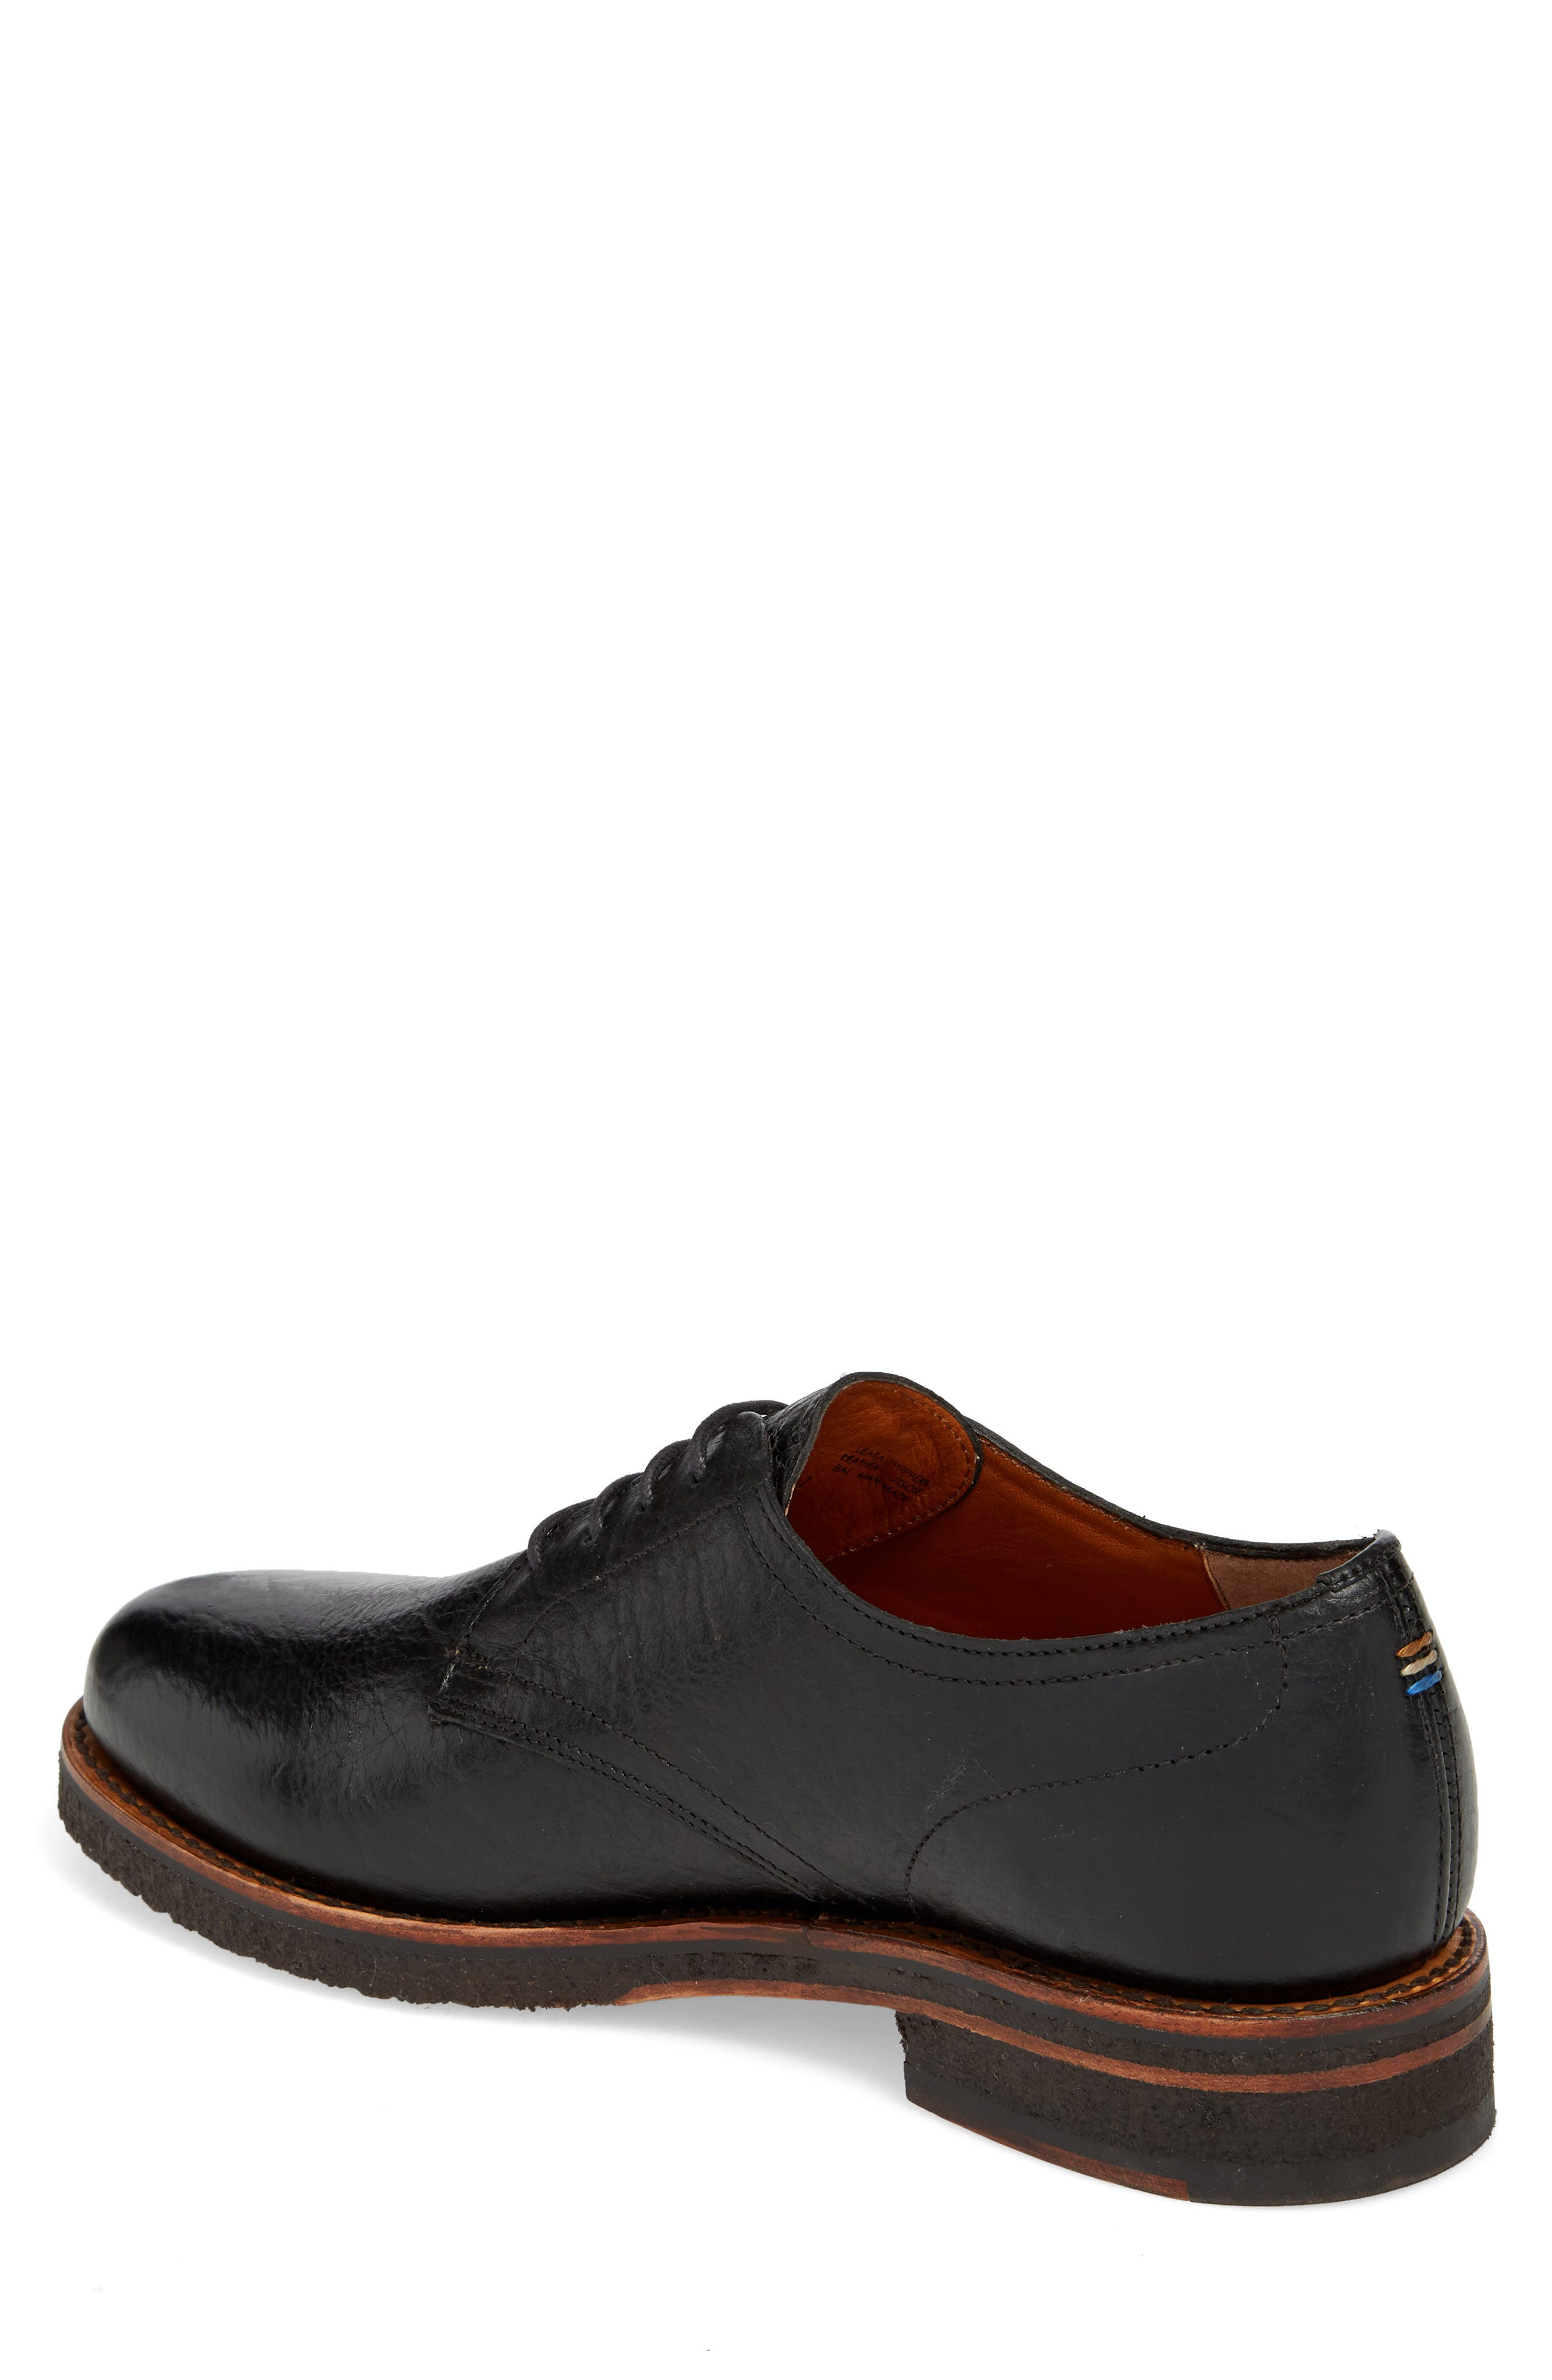 Two24 by Ariat Hawthorne Plain Toe Derby,                             Alternate thumbnail 2, color,                             Black Leather